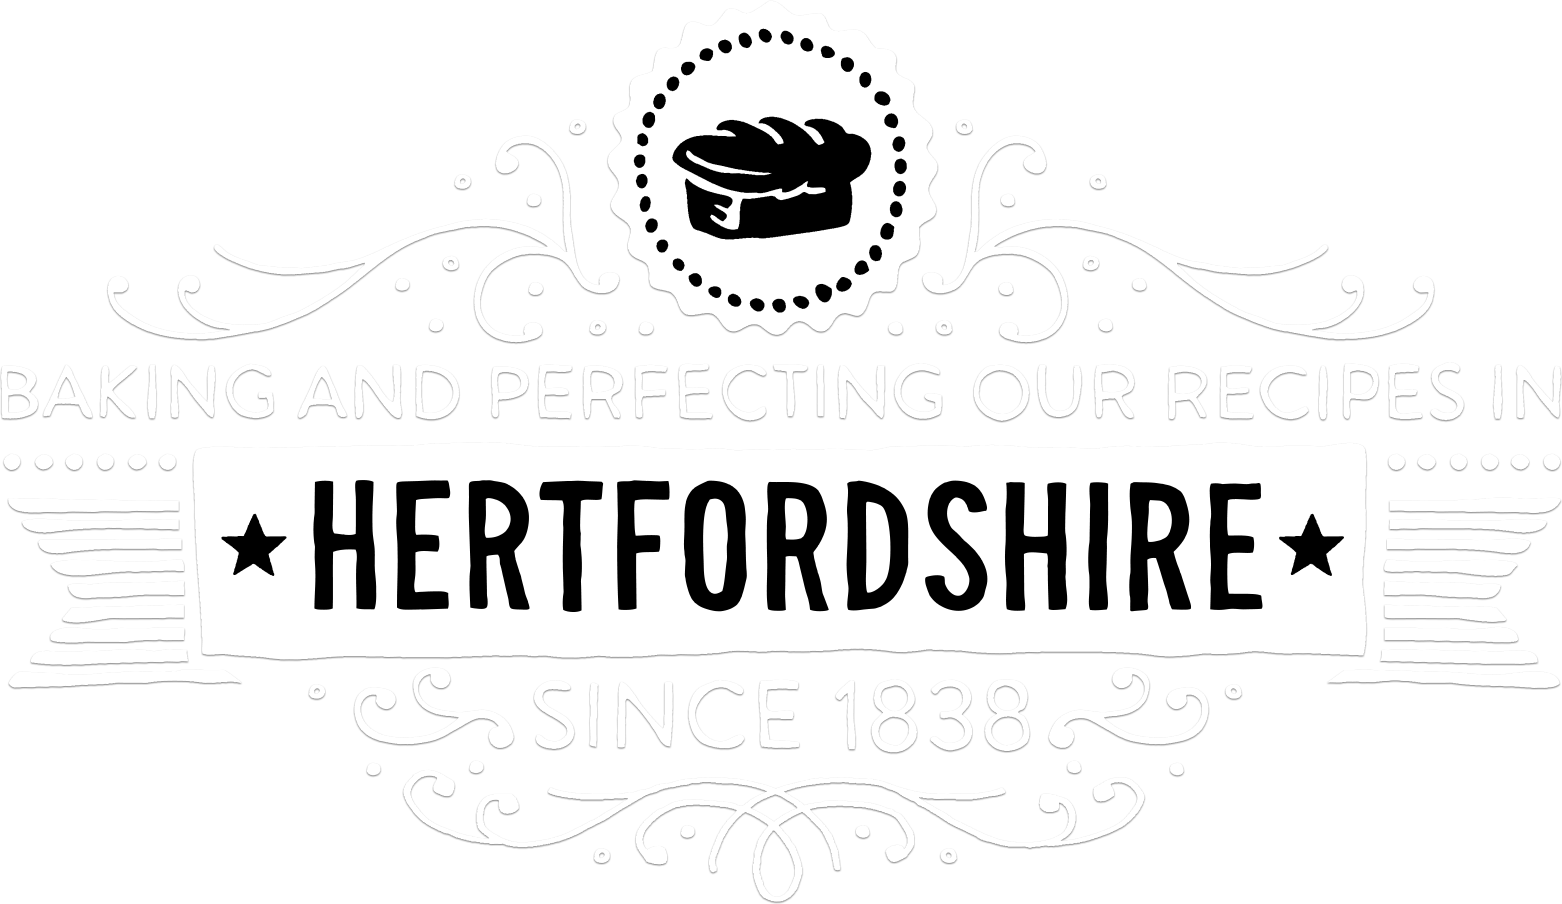 Baking and perfecting our recipes in Hertfordshire since 1838